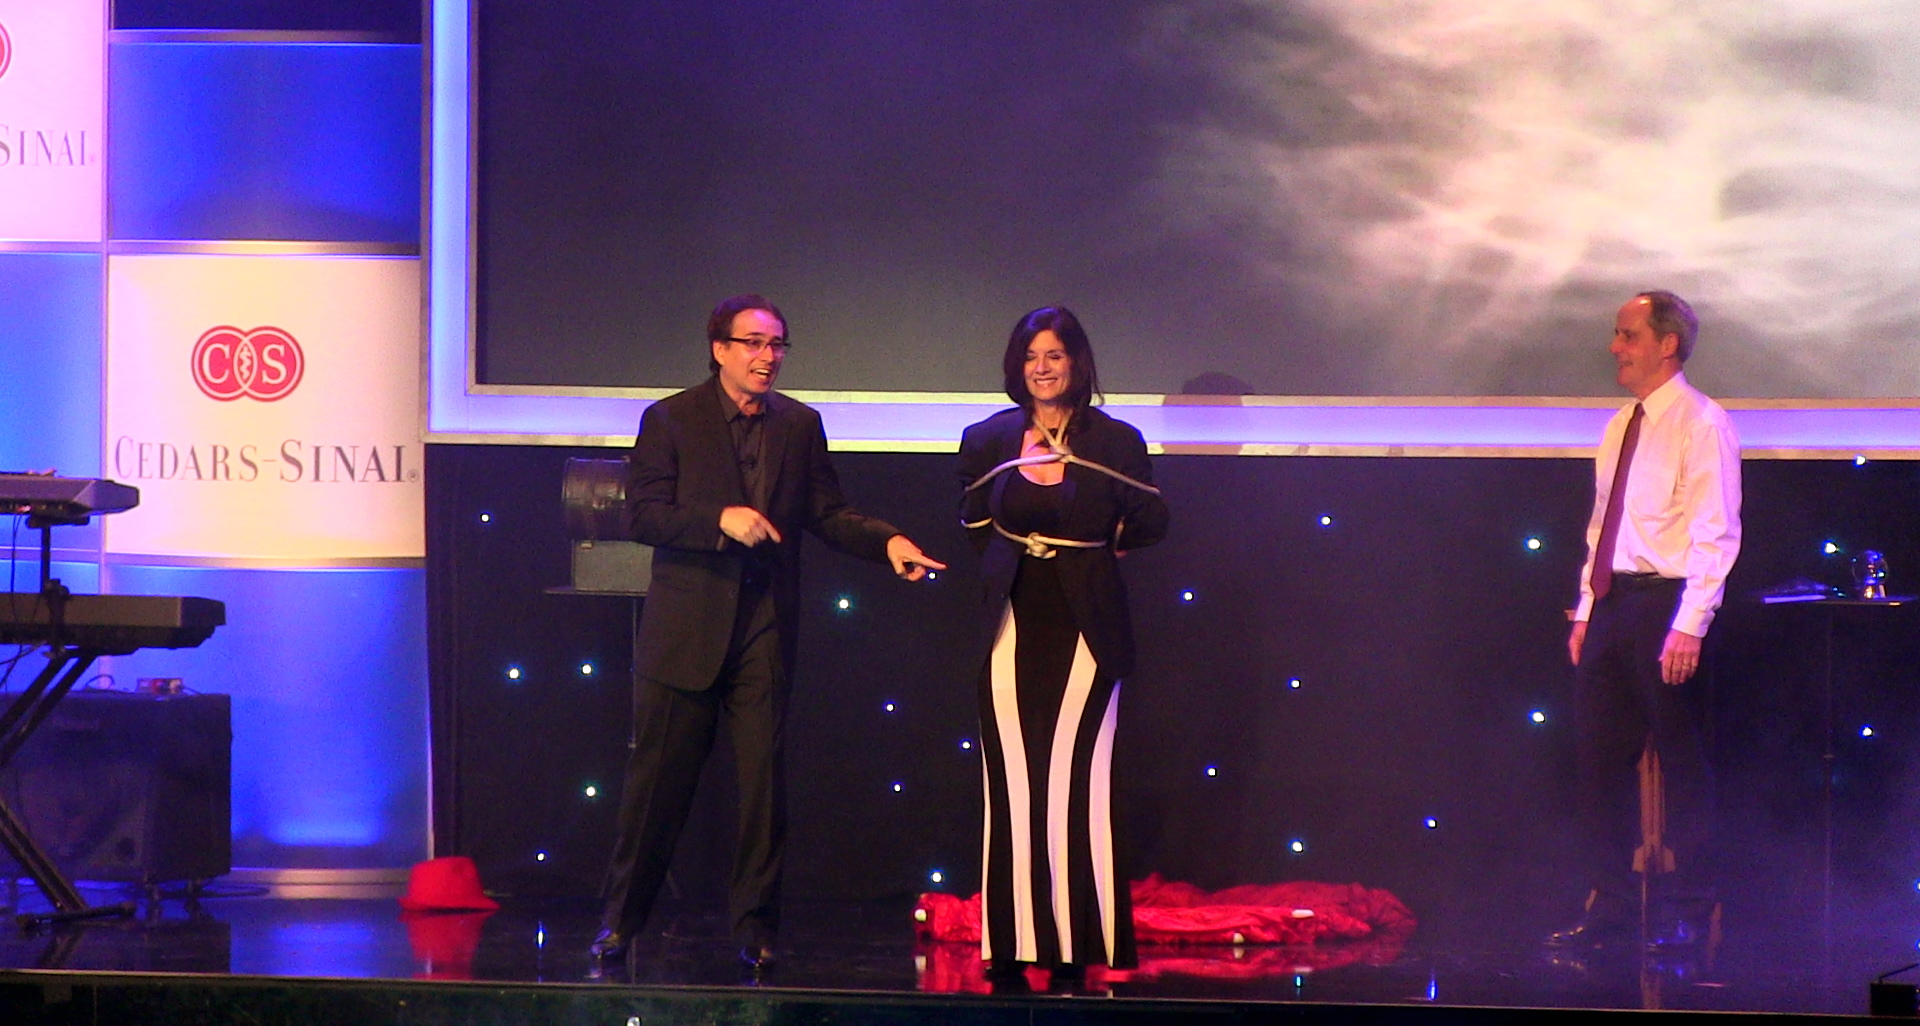 Corporate magicians, Lou Serrano and Dee Dee, performing in front of 500 people at a Corporate event  N BEVERLY HILLS, CA for Cedars-sinai Medical Center.